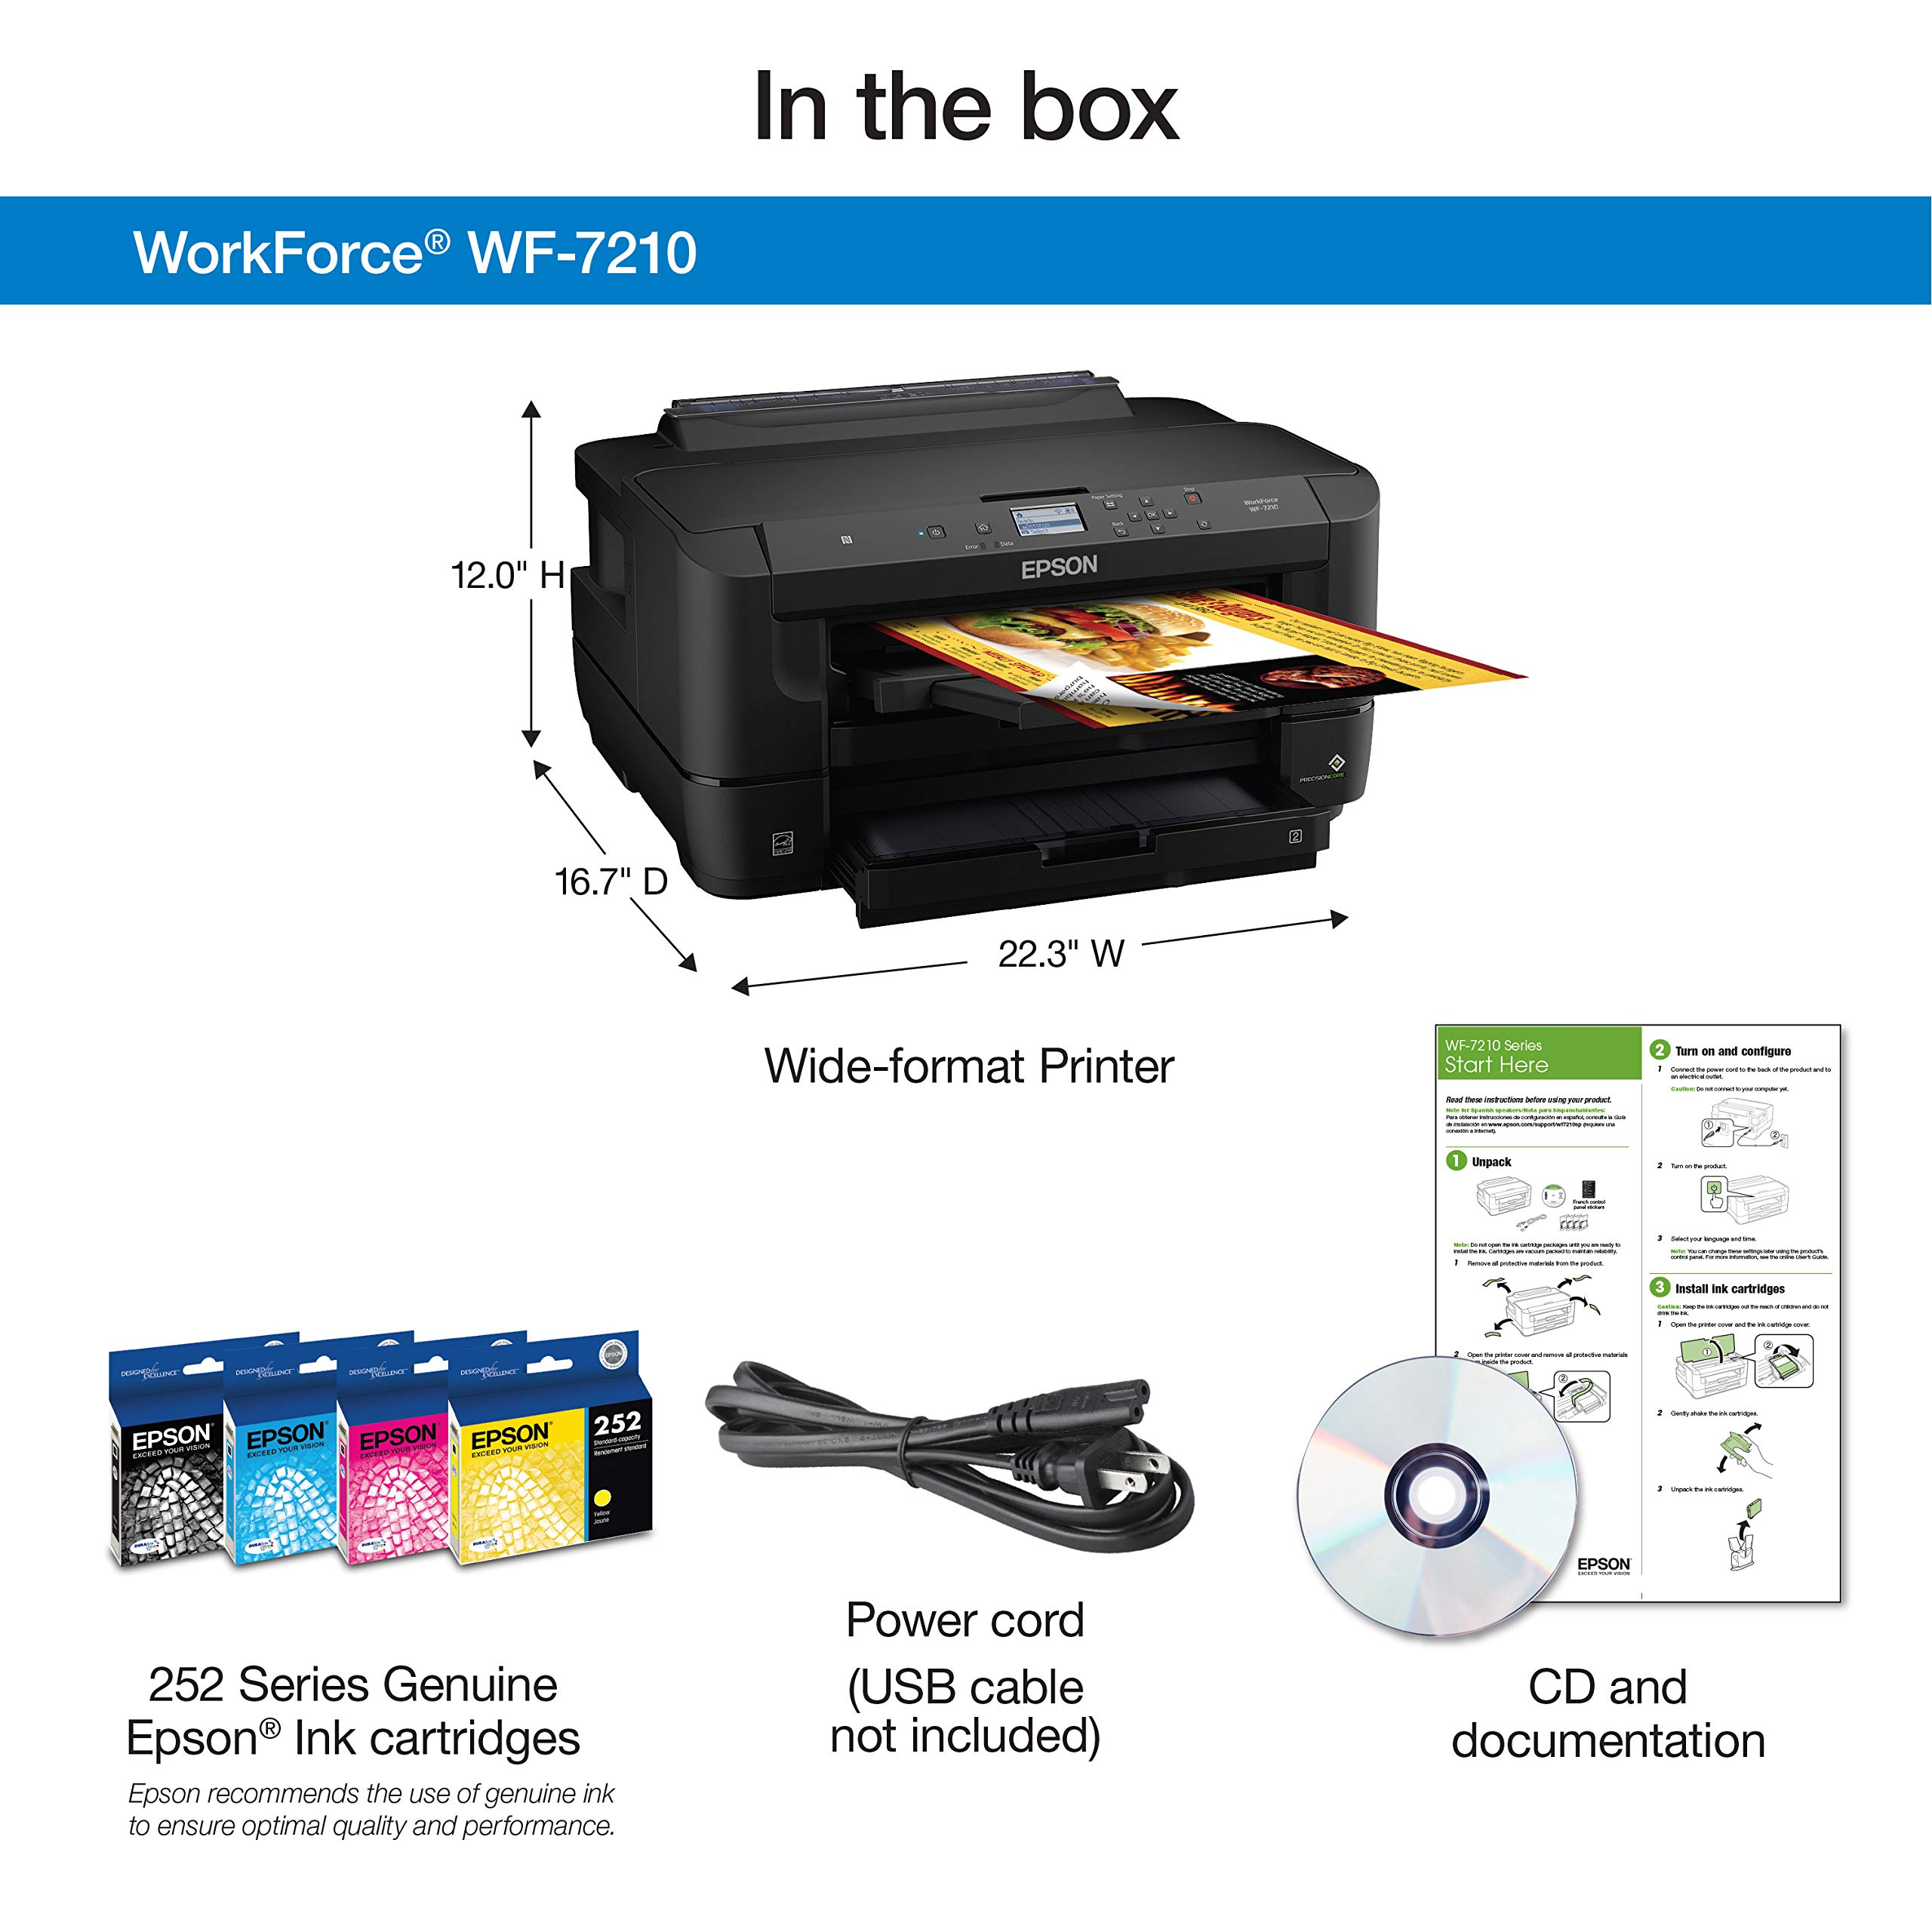 Workforce WF-7210 Wireless Wide-Format Color Inkjet Printer with Wi-Fi Direct and Ethernet, Amazon Dash Replenishment Enabled by Epson (Image #4)